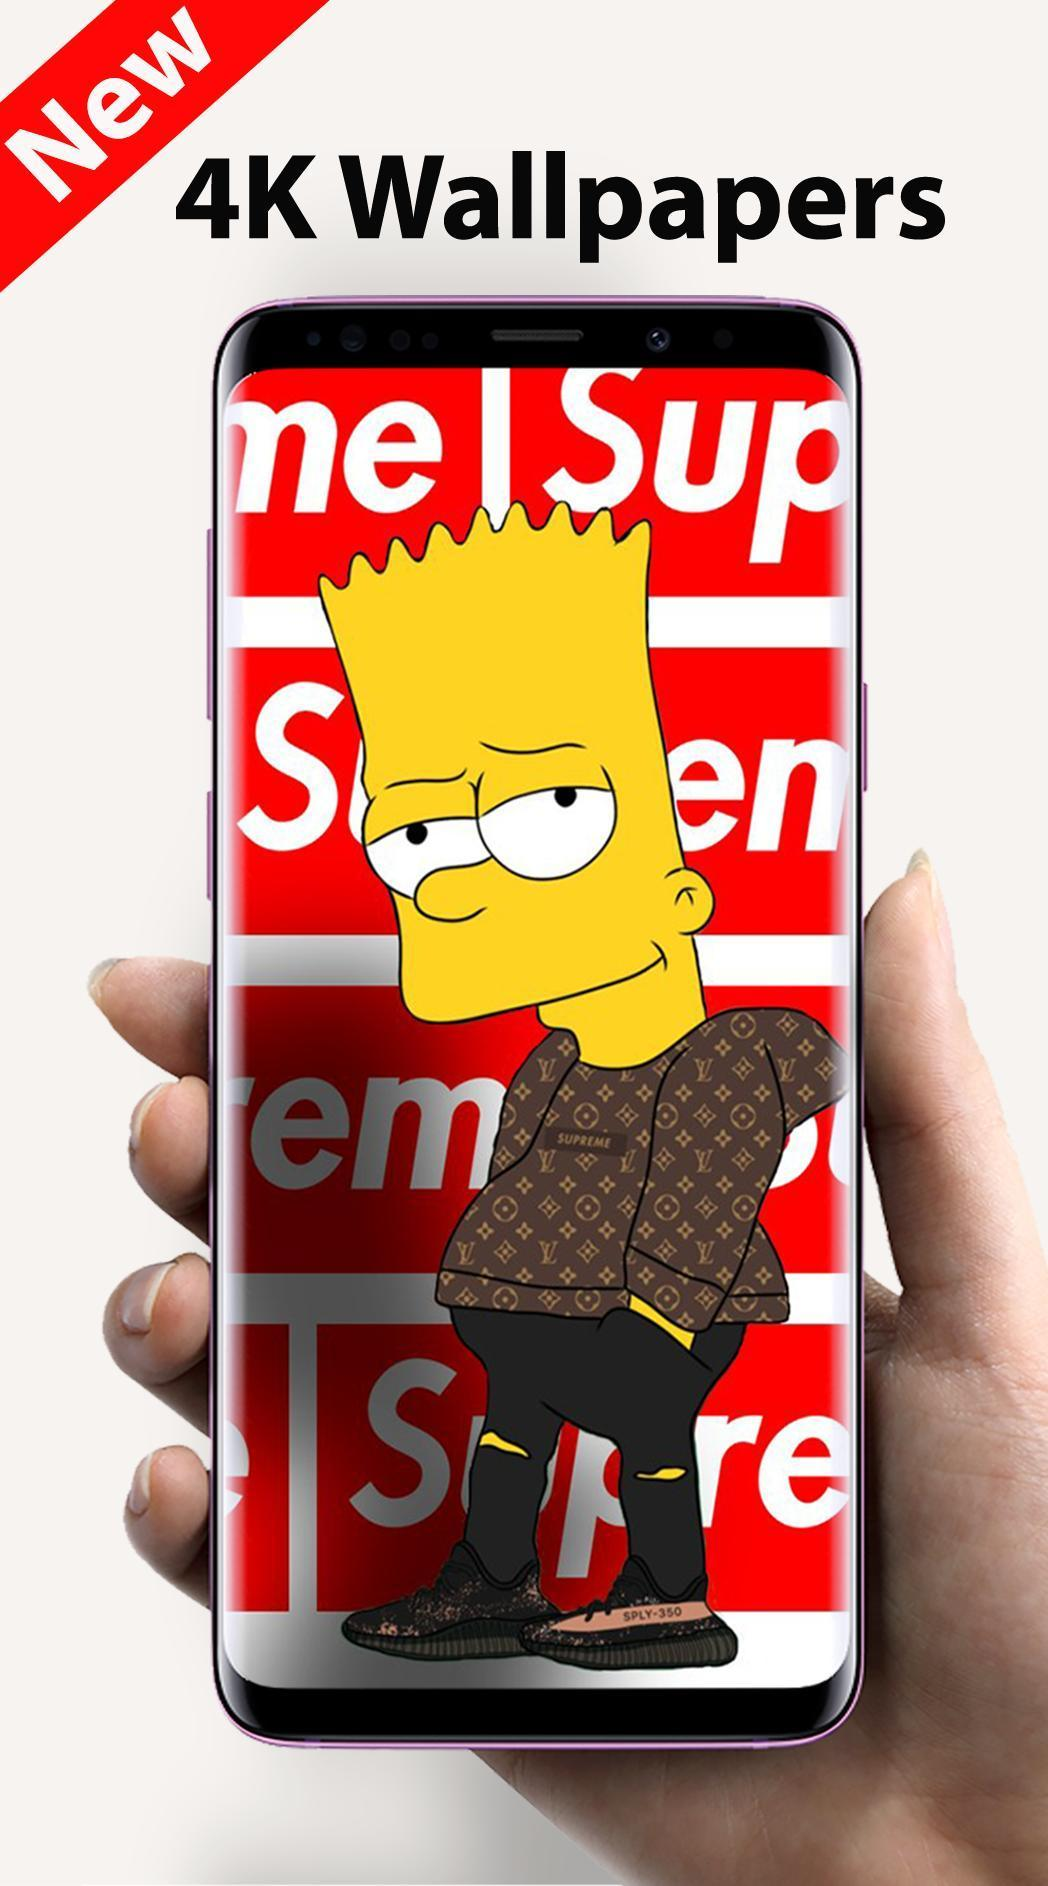 Supreme Wallpapers Hd 4k Edm Ringtones For Android Apk